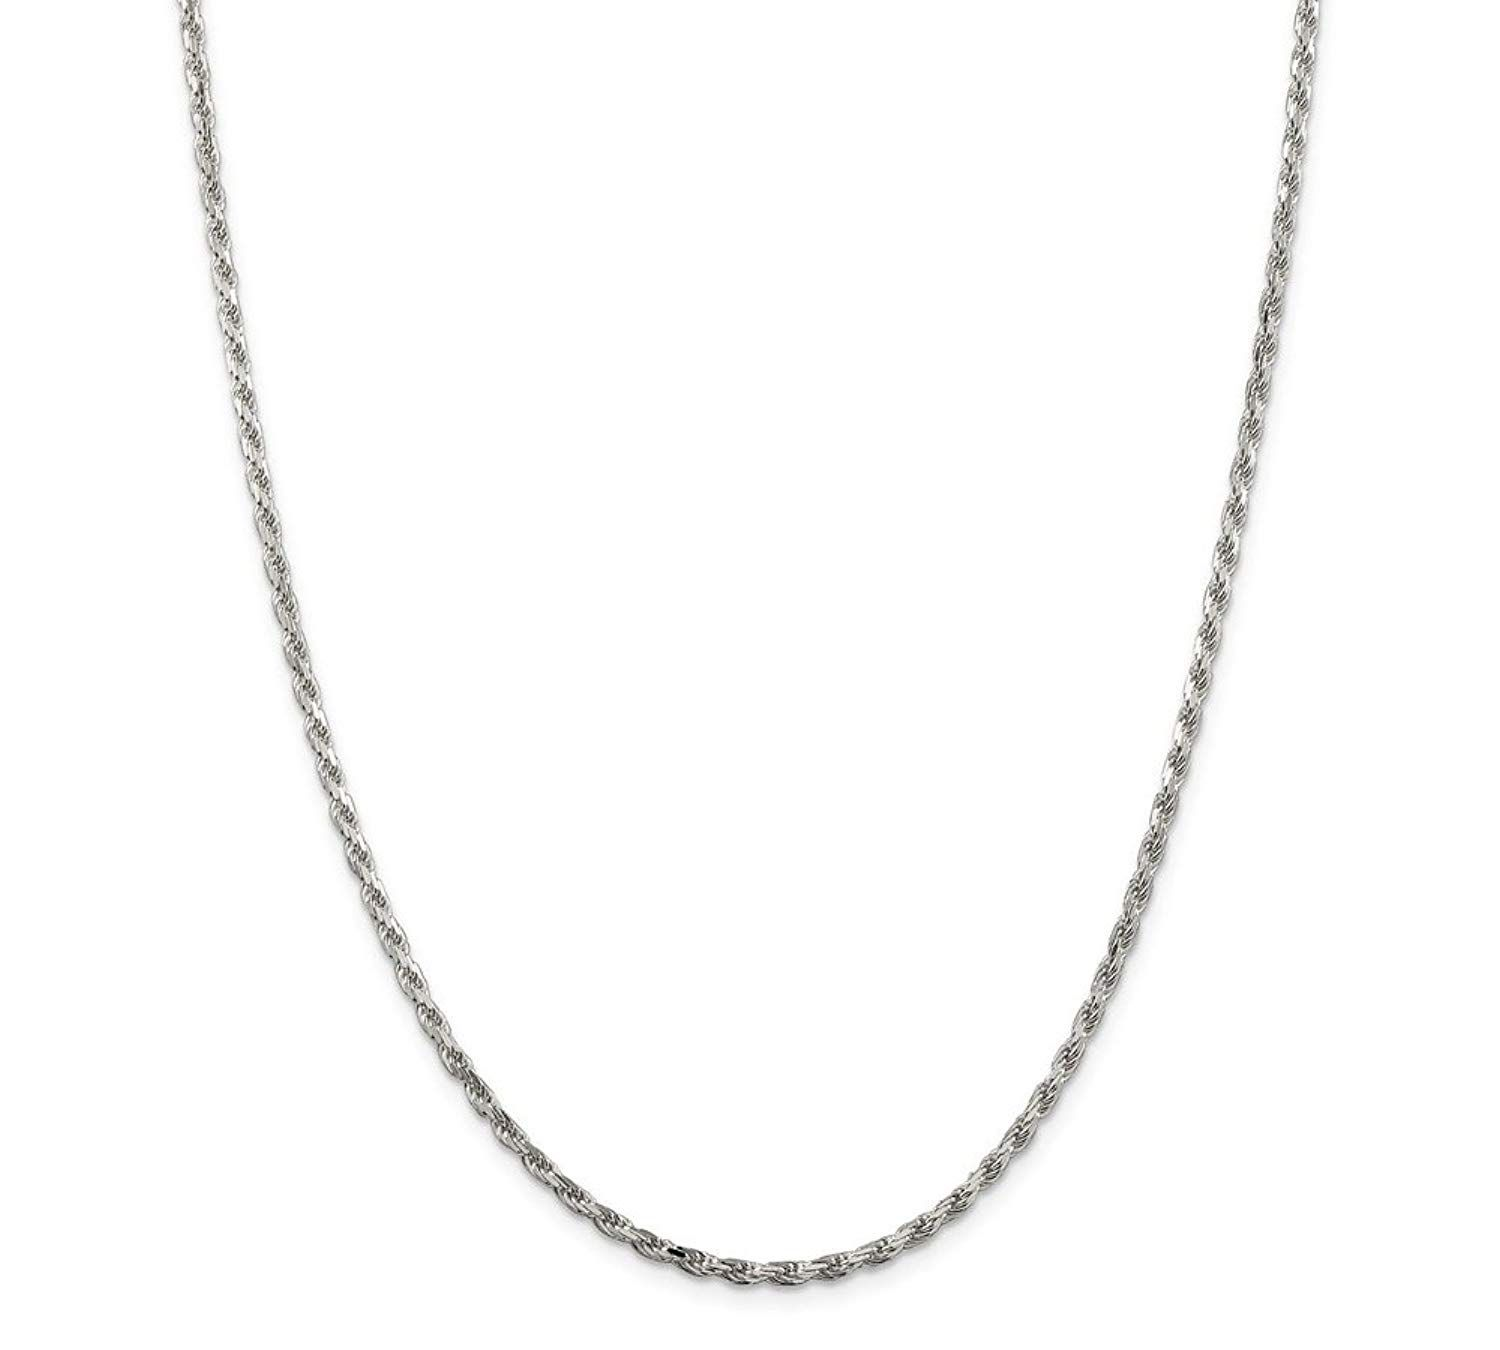 Sterling Silver Fine Curb Chain Necklace Various Lengths 1mm Thick 18 and 20 Inch Long 16